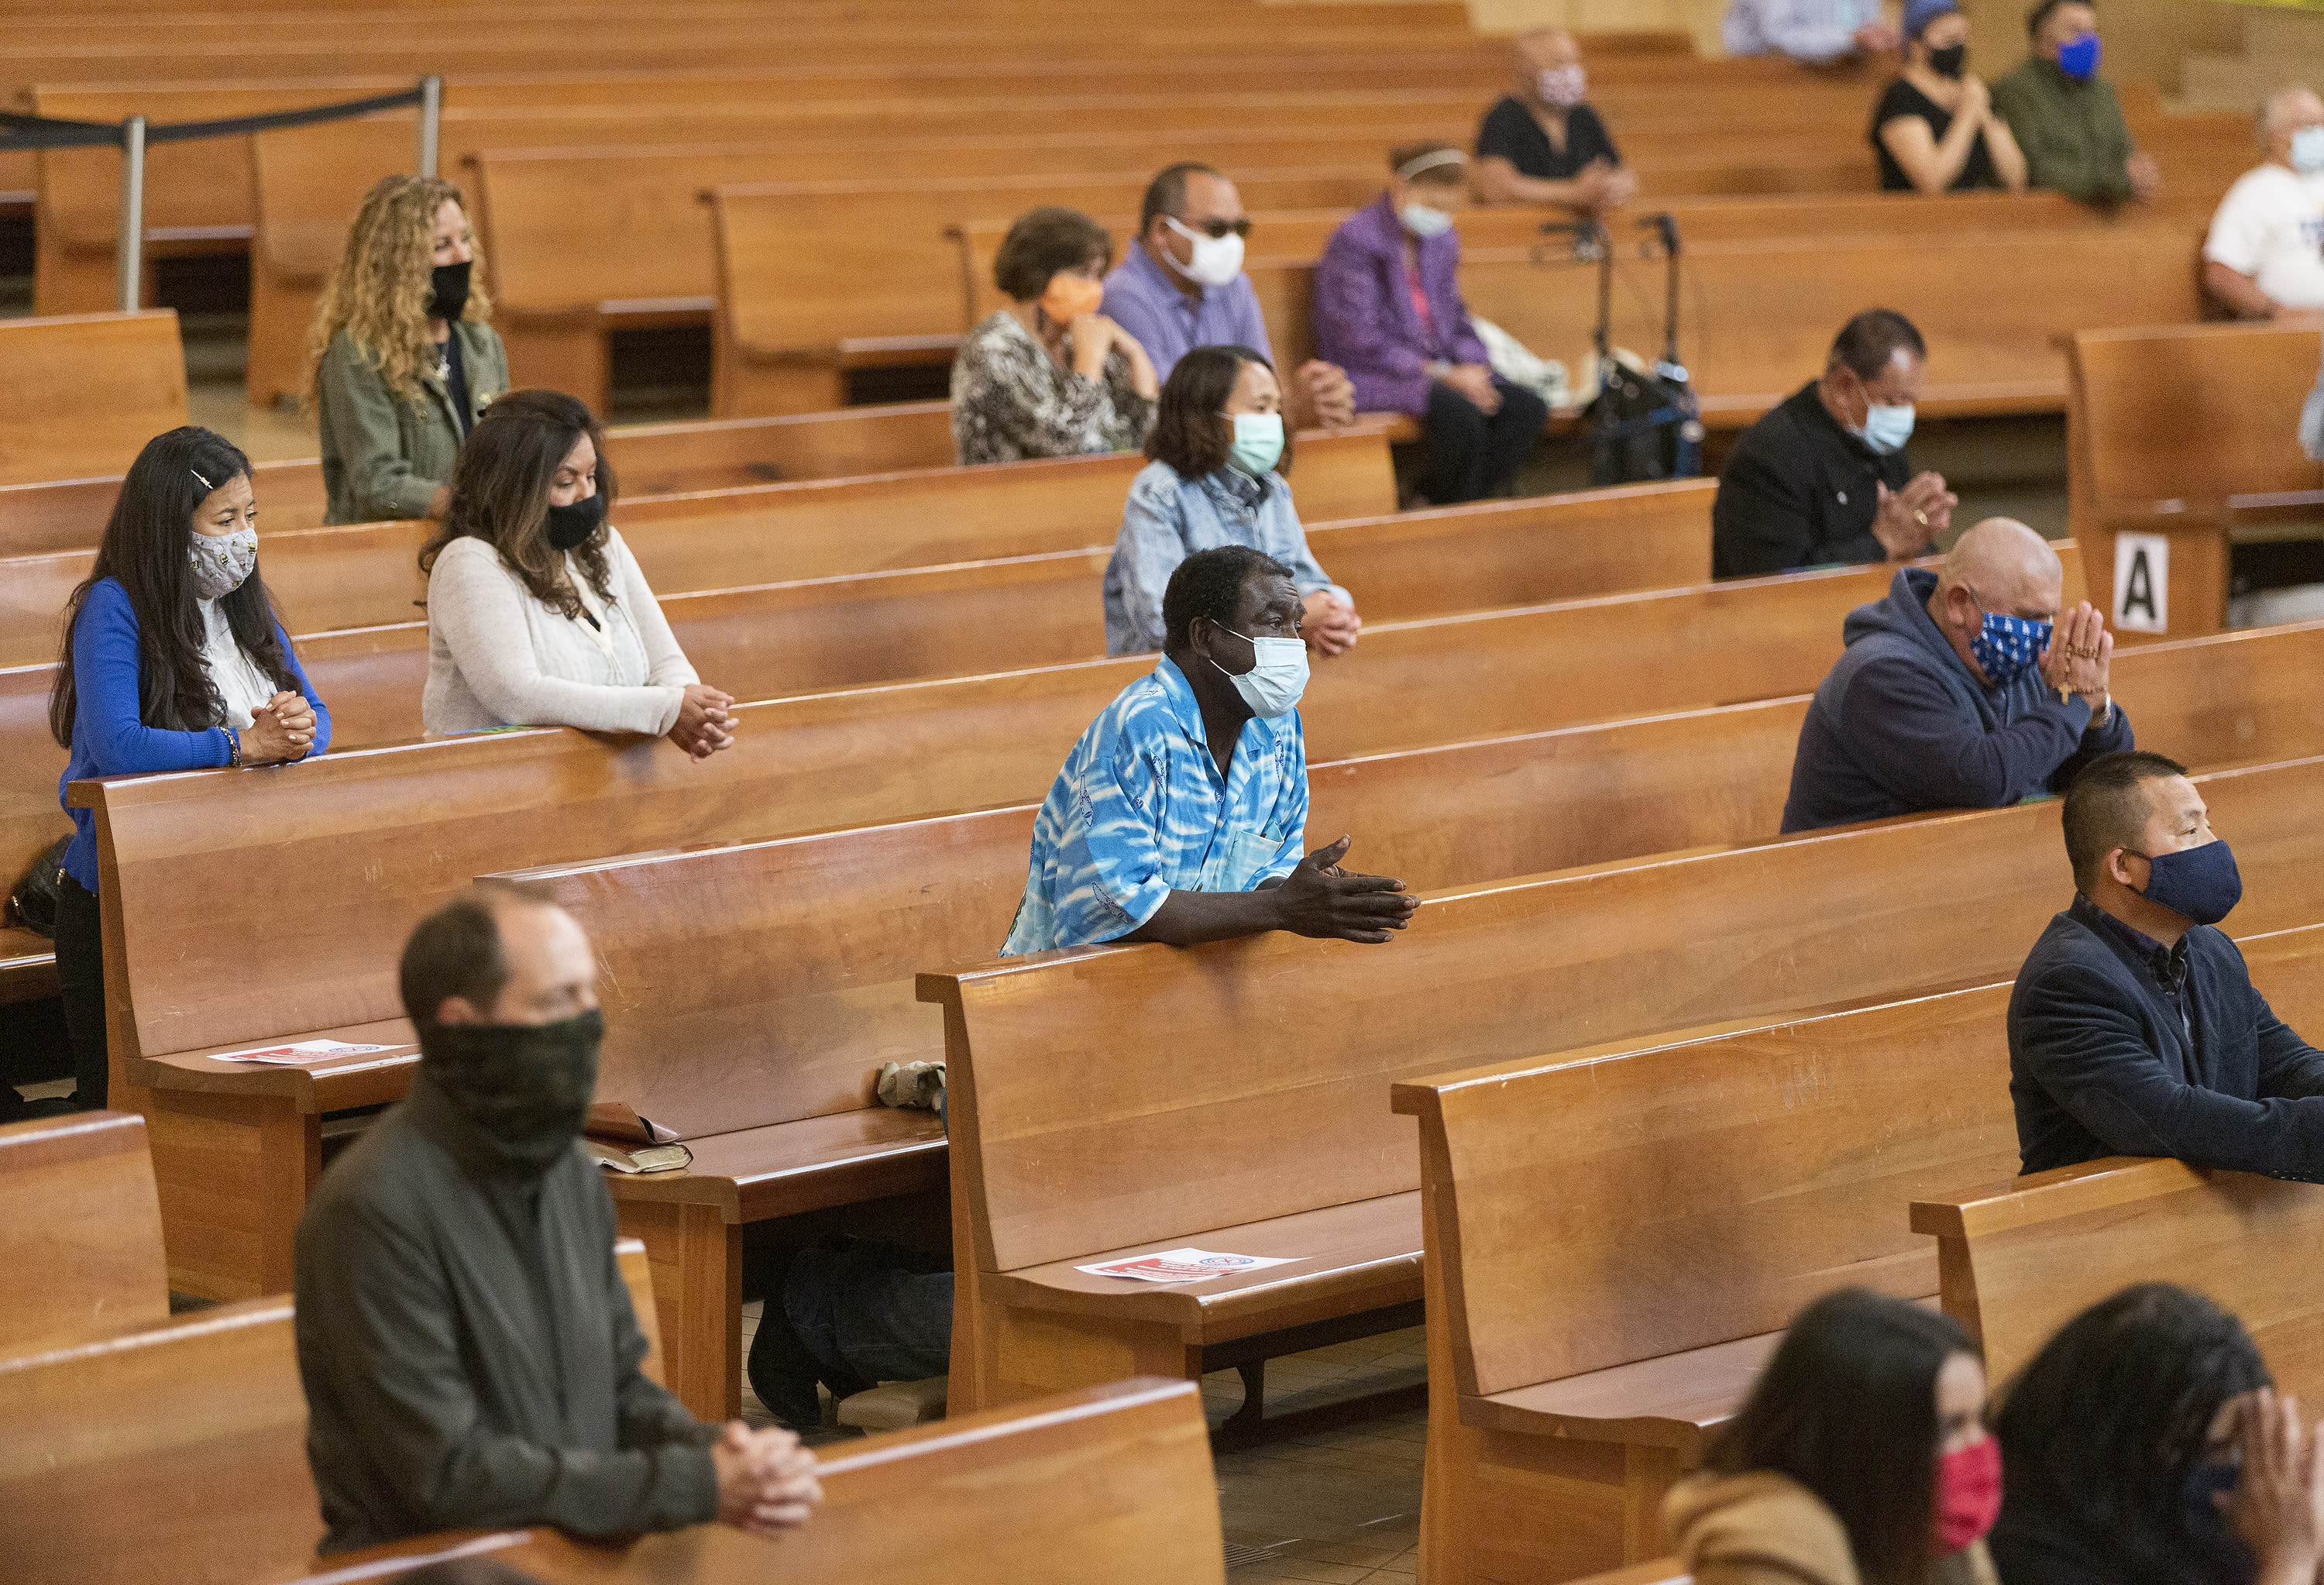 FILE - Congregants kneel and observe social distancing while listening to Los Angeles Archbishop Jose H. Gomez celebrate Mass at Cathedral of Our Lady of the Angels in downtown Los Angeles, Sunday, June 7, 2020. A religious freedom law firm with ties to President Donald Trump says it will sue California over its recent ban on singing or chanting in the church to slow the spread of the coronavirus. (AP Photo/Damian Dovarganes, File)